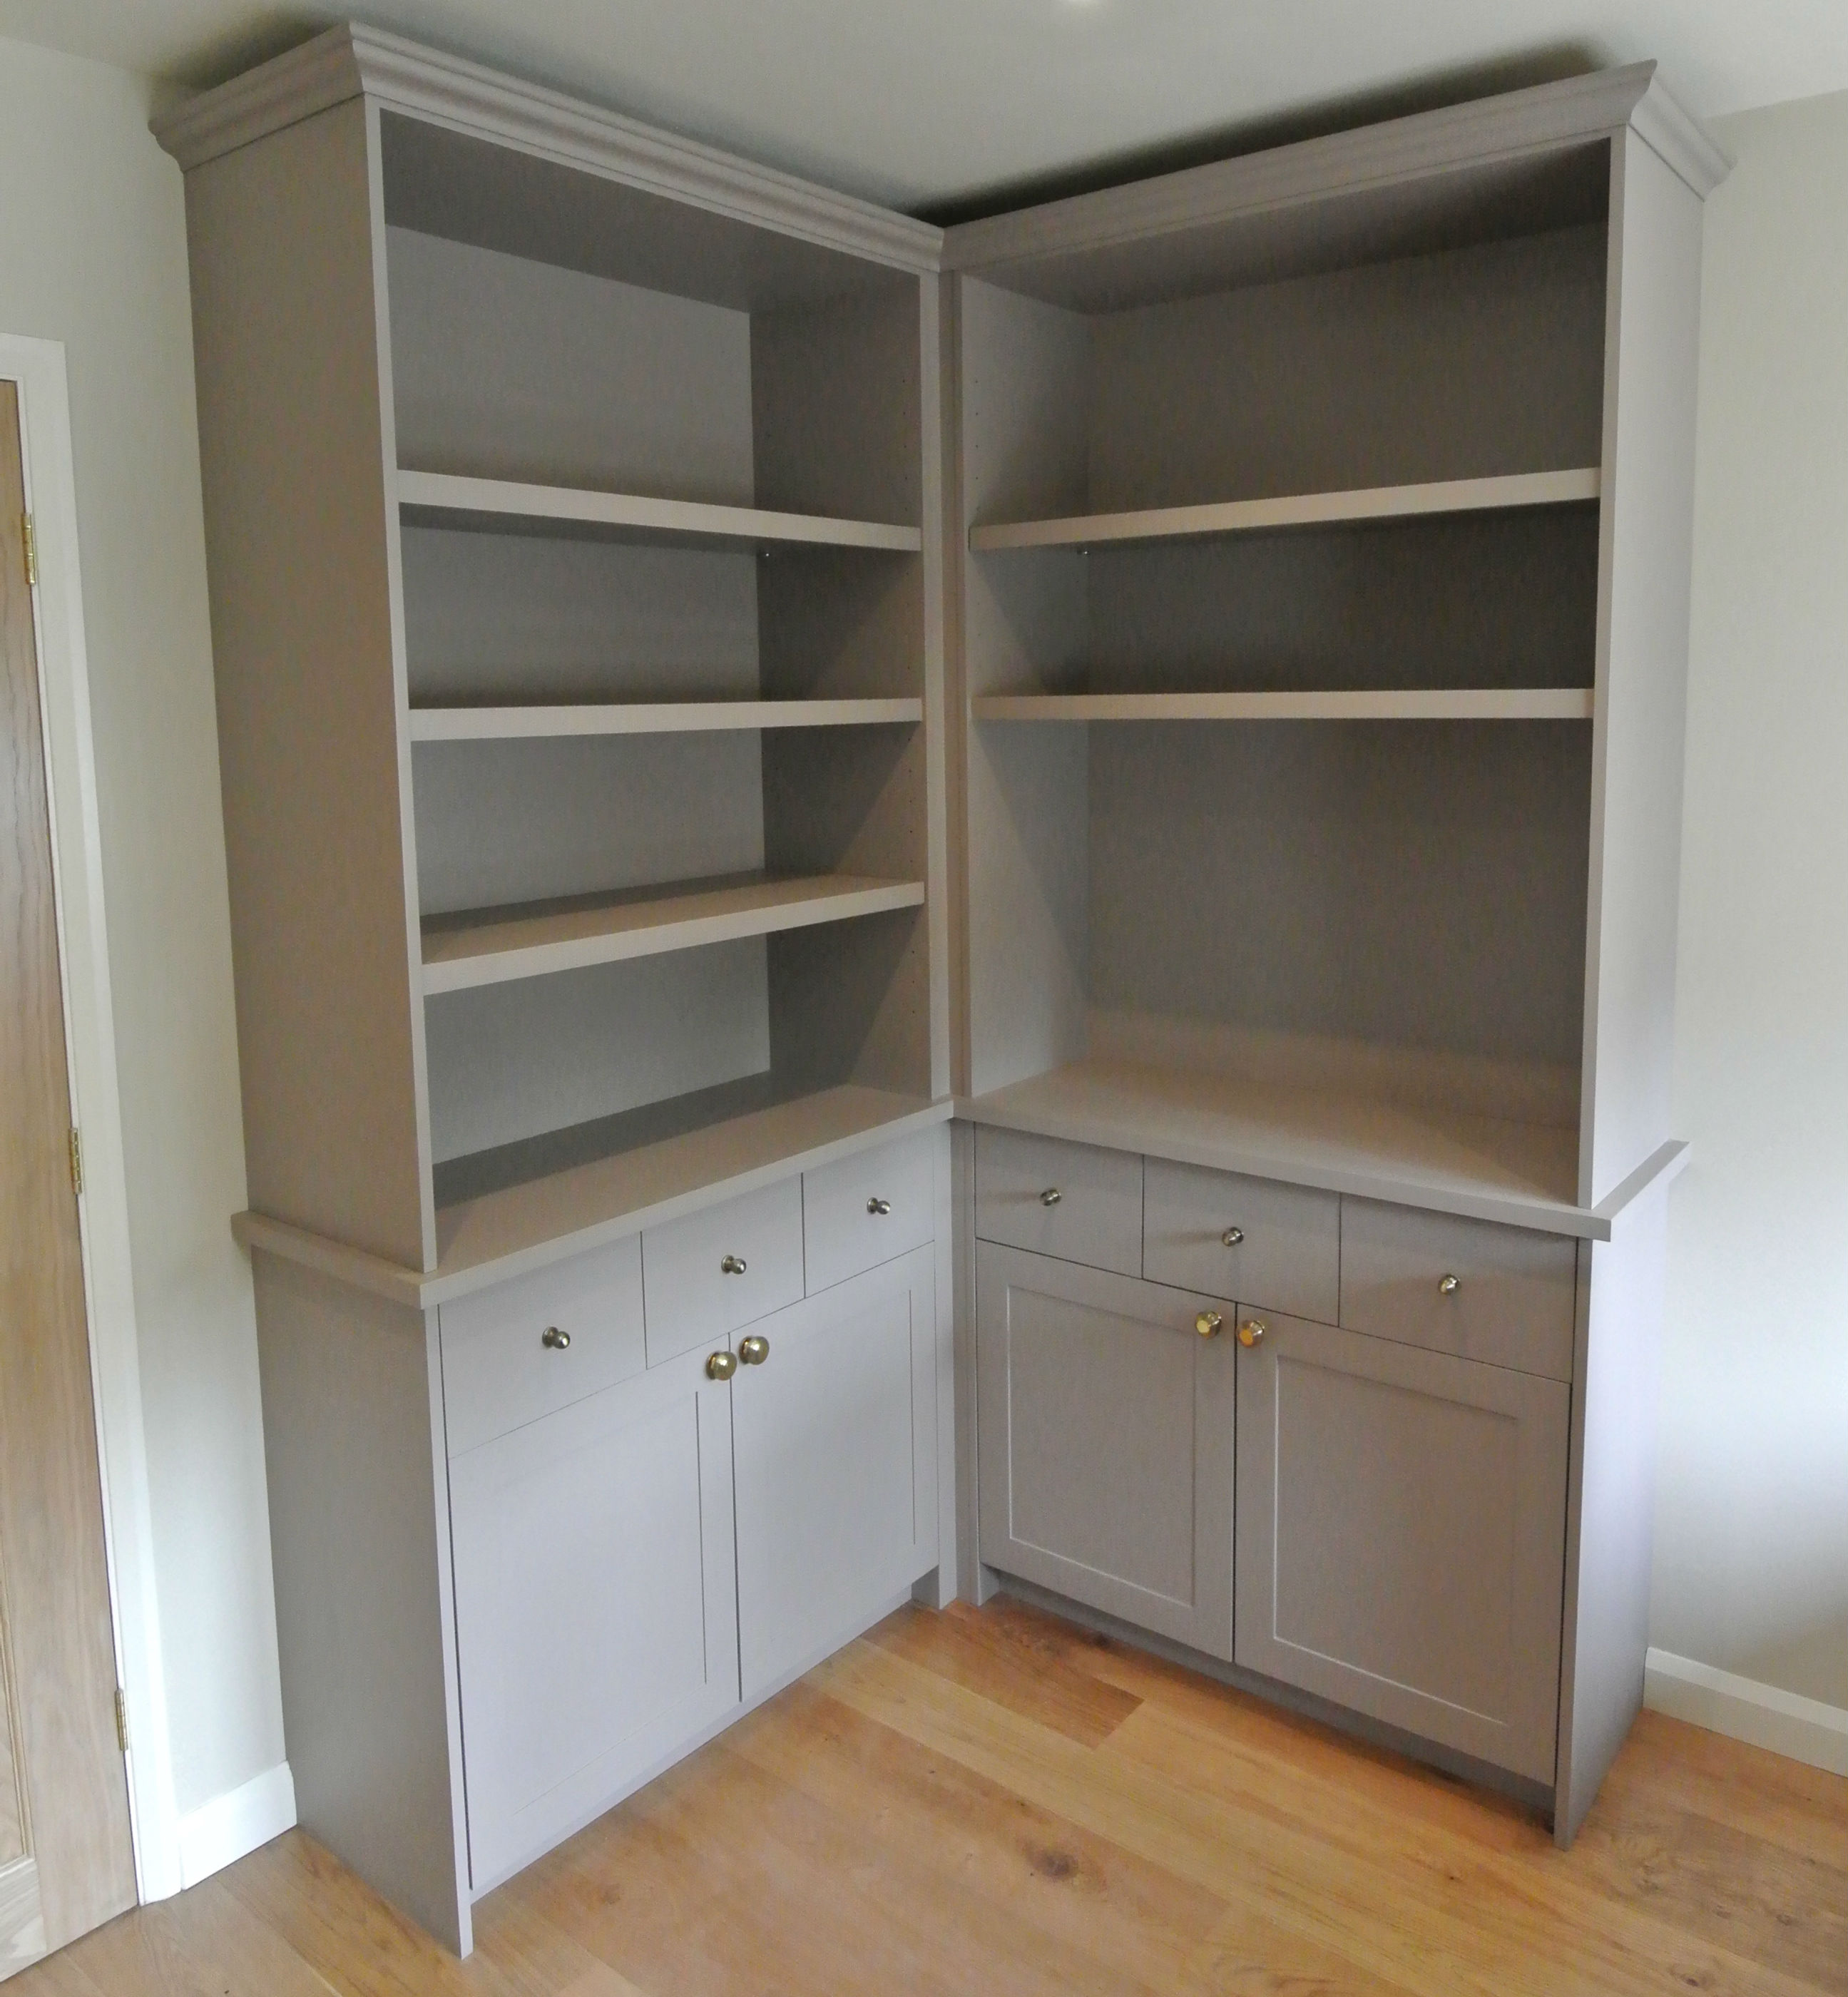 Kitchen Shelving units Sherborne